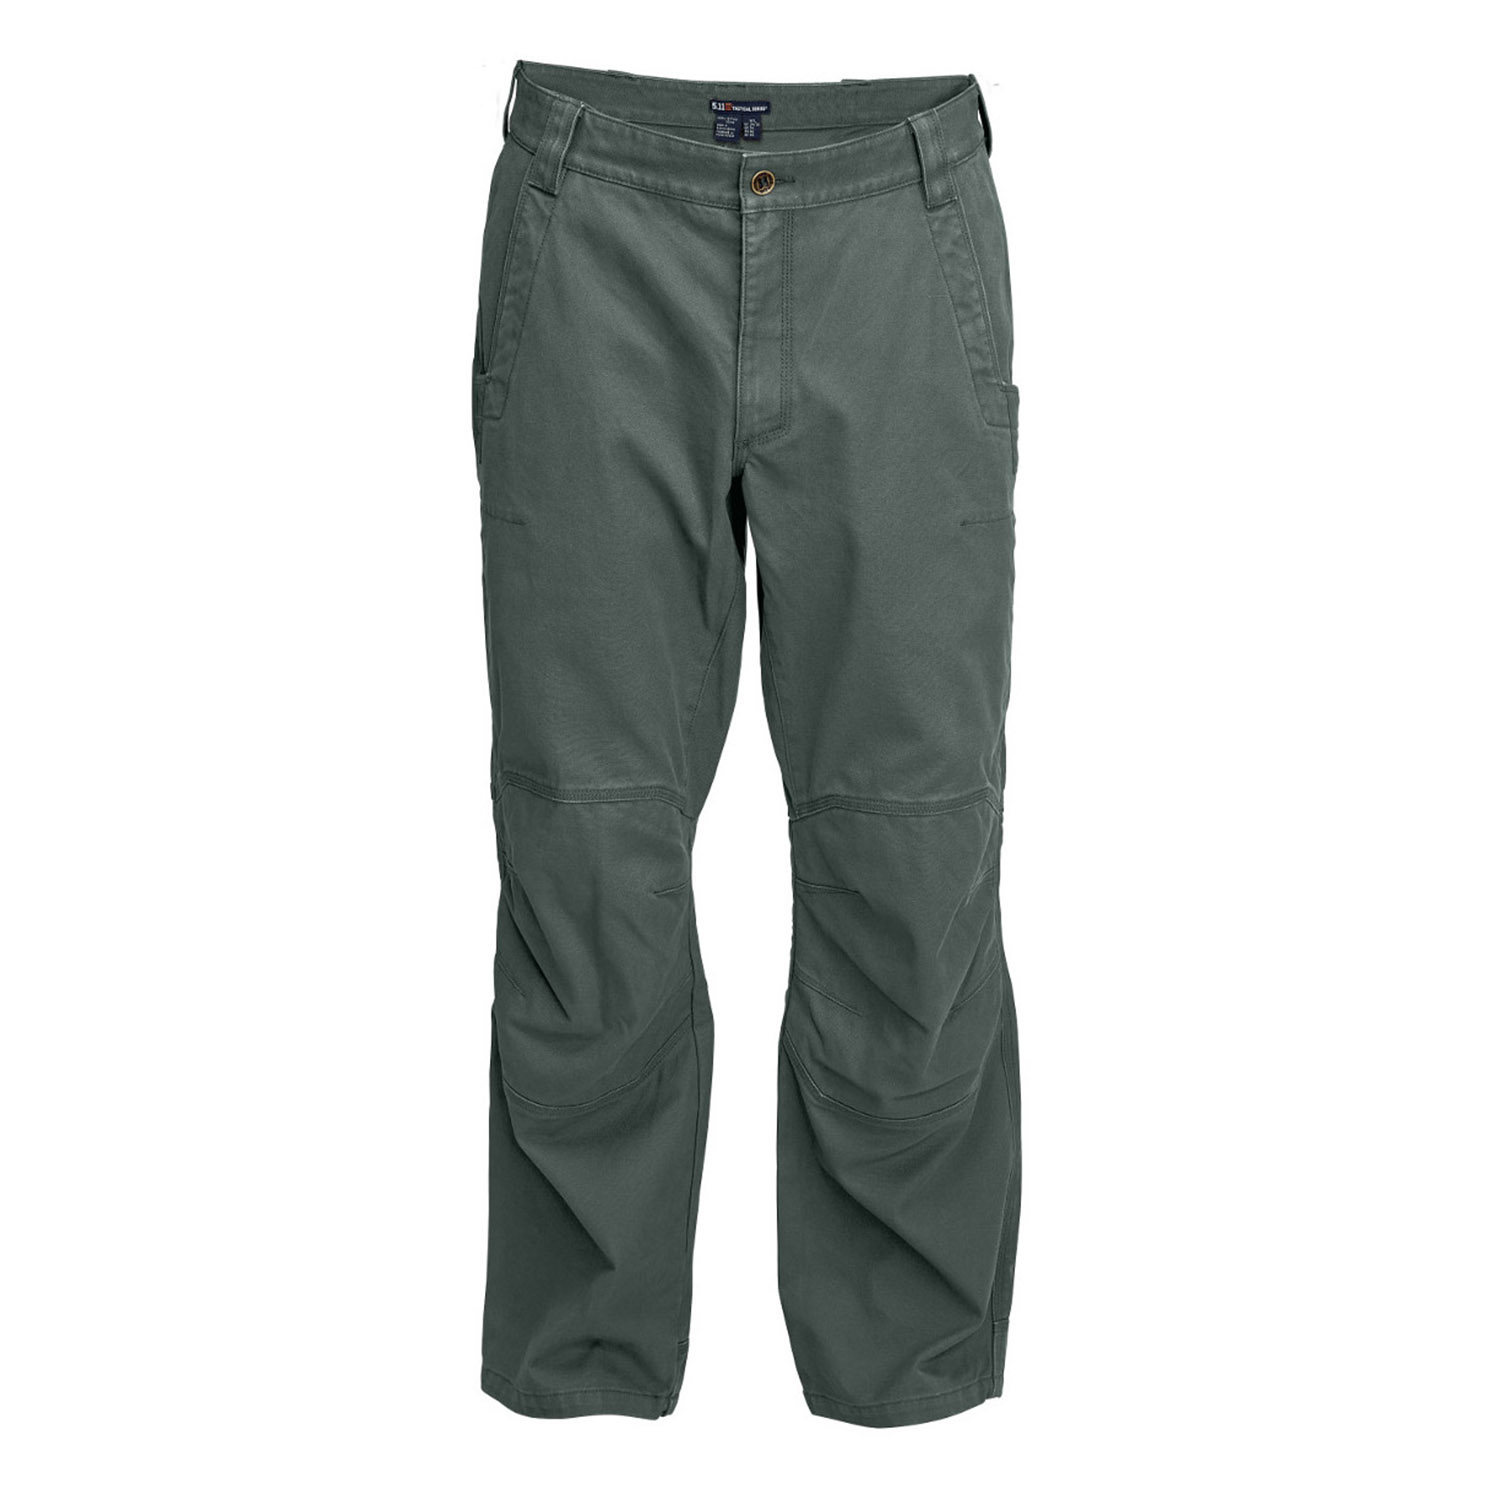 5.11 Tactical Kodiak Pants